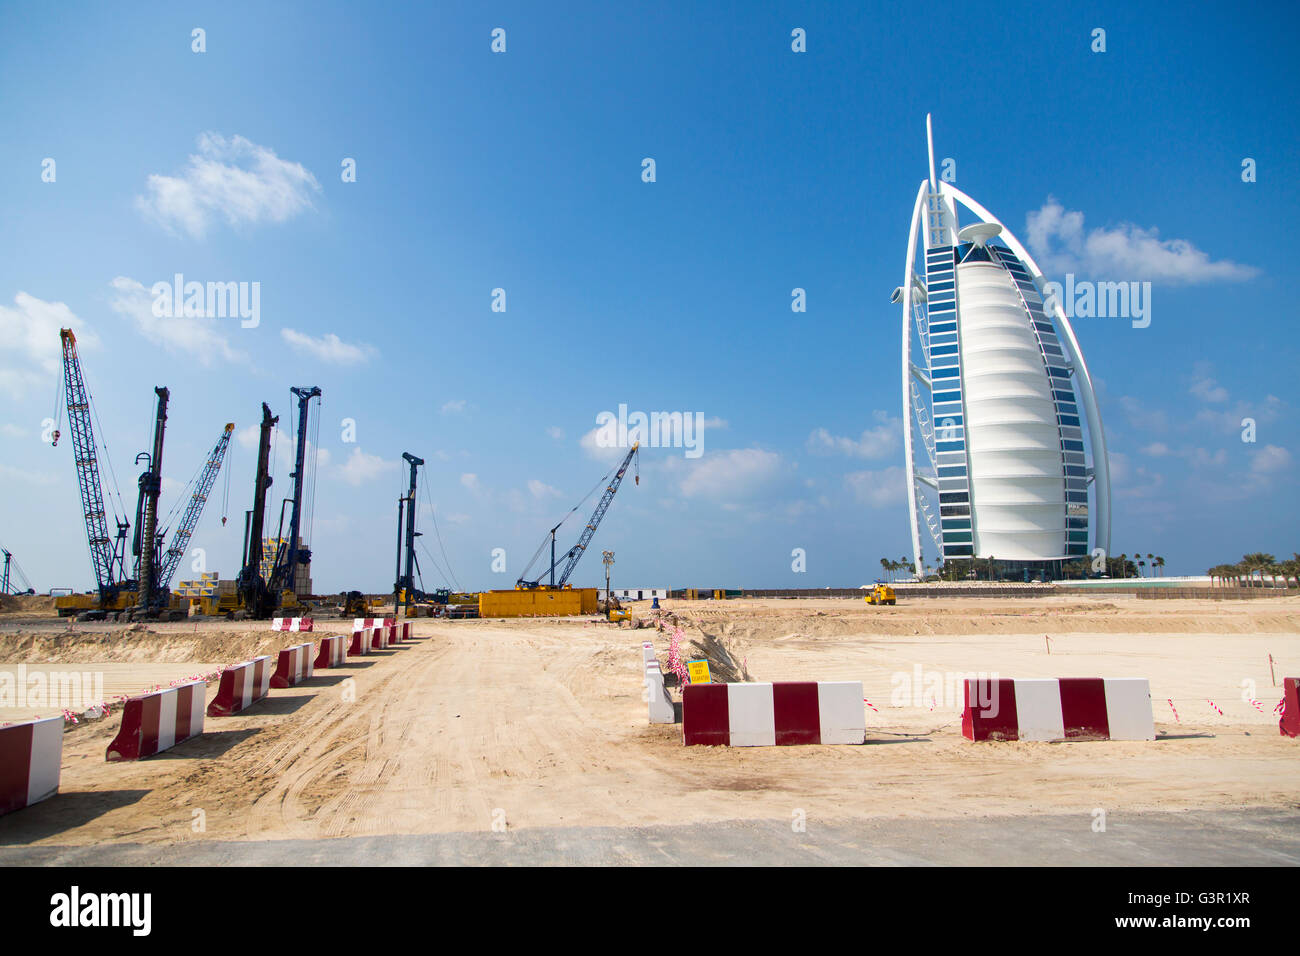 DUBAI, UAE - JANUARY 16, 2014: Burj Al Arab hotel in Dubai. The complex stands on an artificial island and is connected - Stock Image